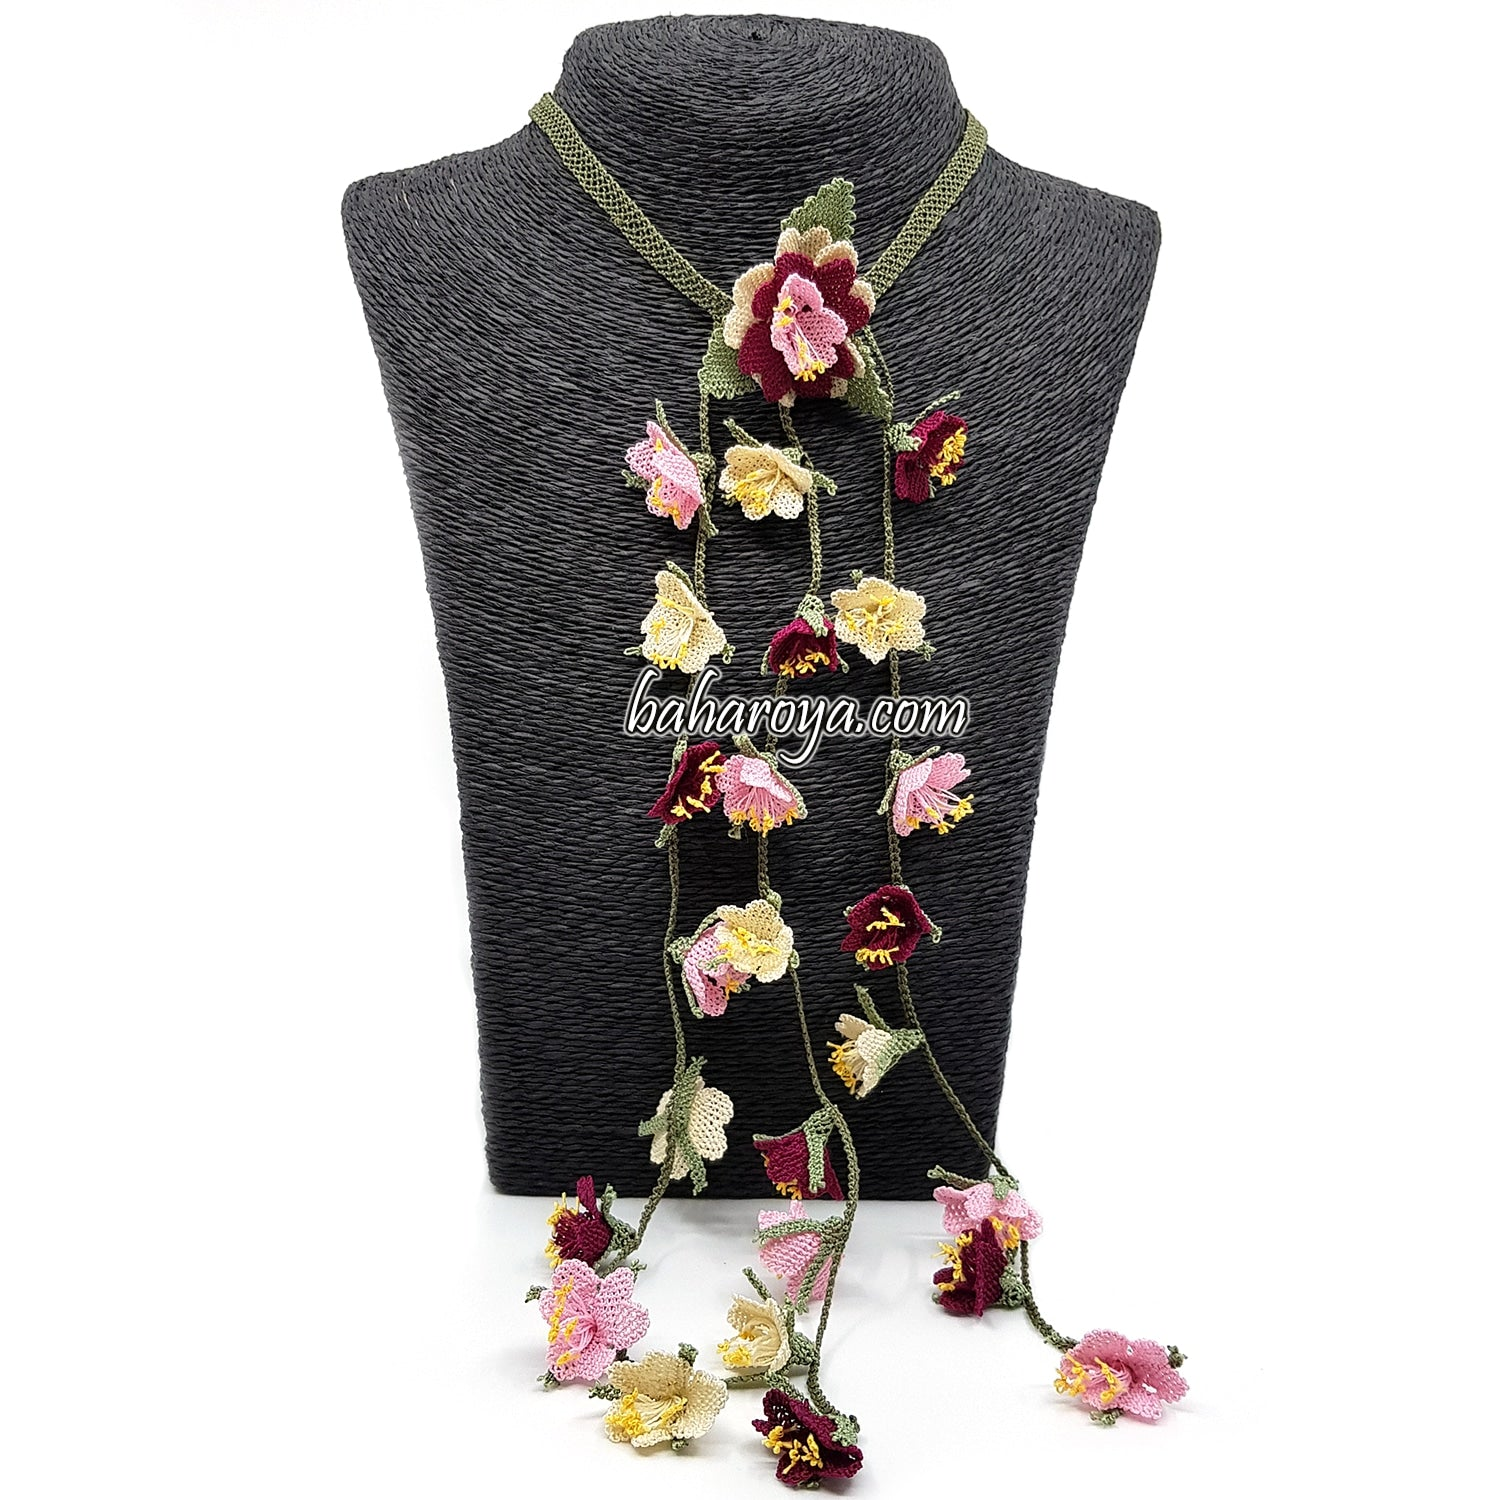 Handmade Needle Lace Special Scarf Flower Necklace